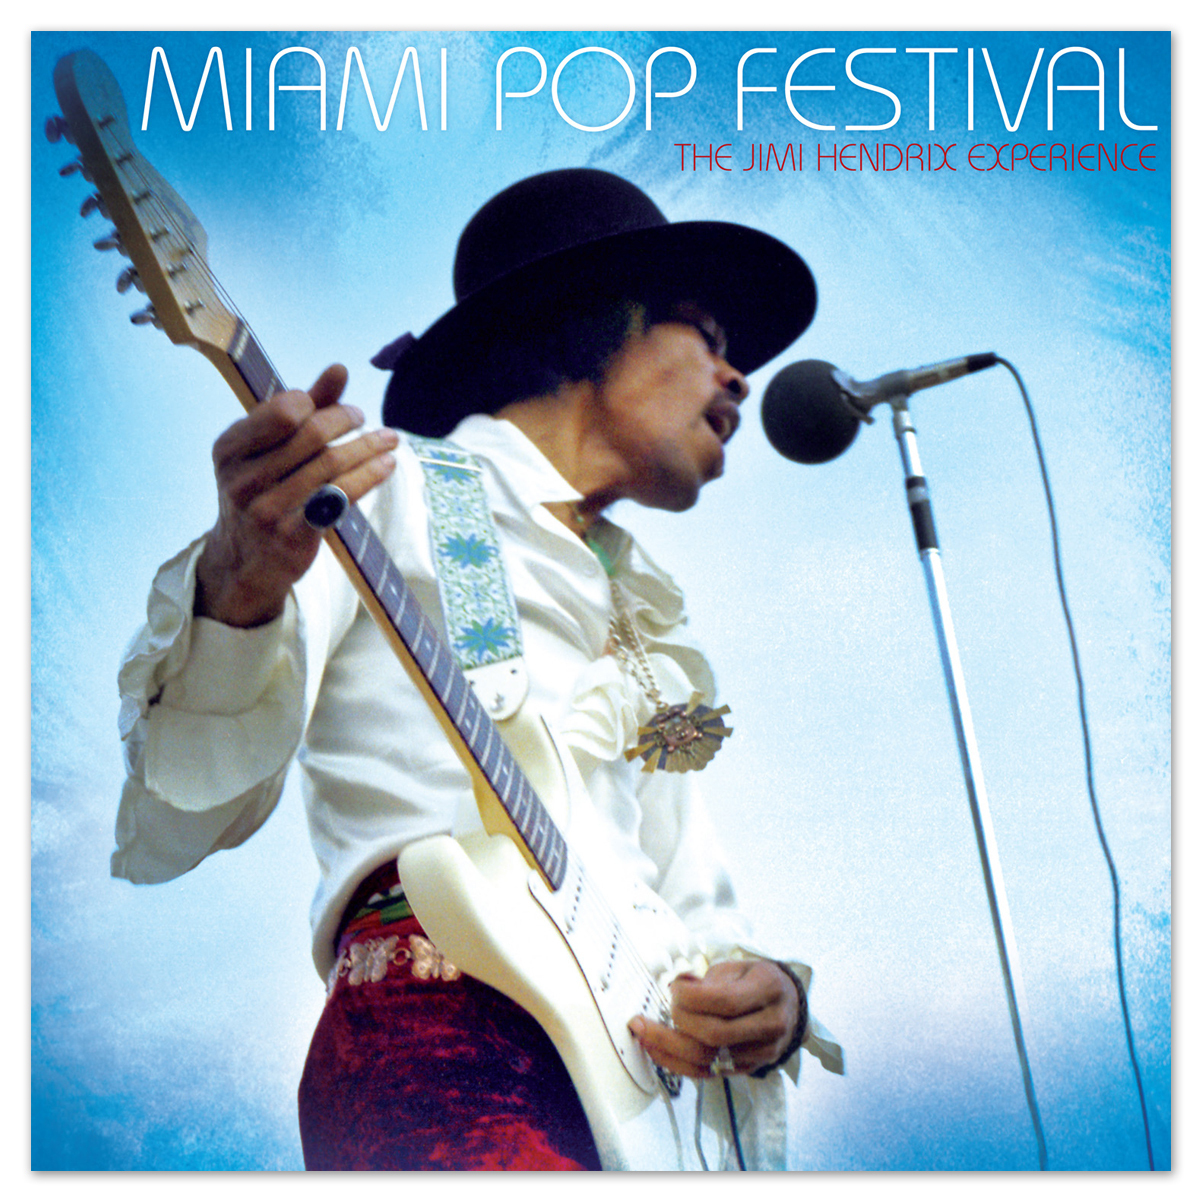 The Jimi Hendrix Experience: Miami Pop Festival CD